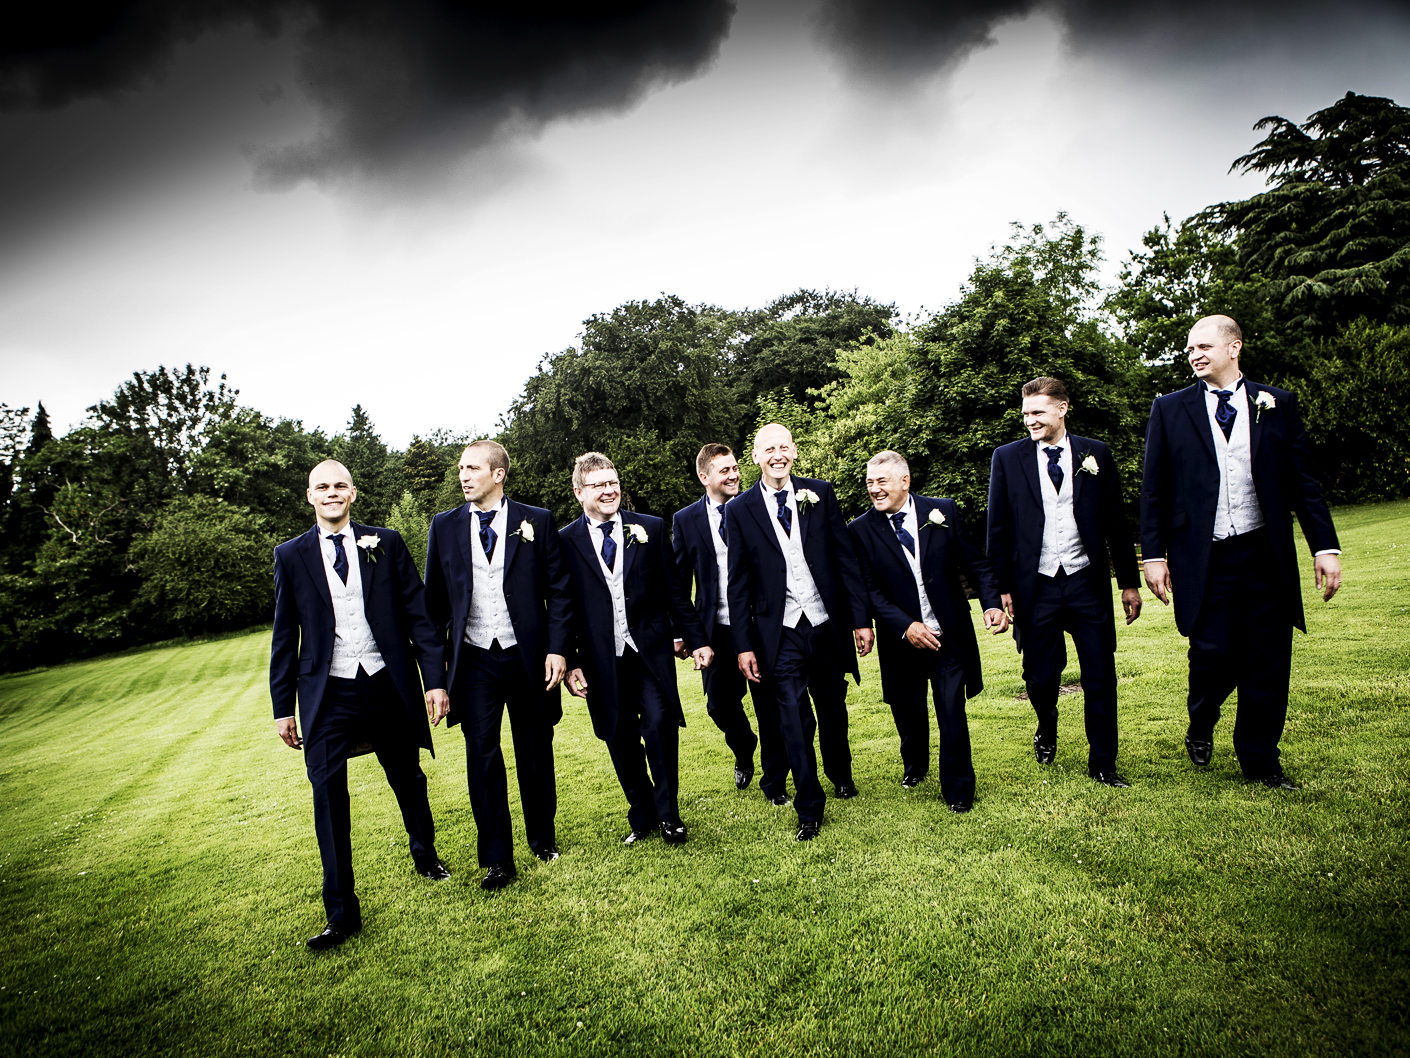 photography-of-the-ushers-and-groom-at-the-wedding-venue-cranage-hall-cheshire